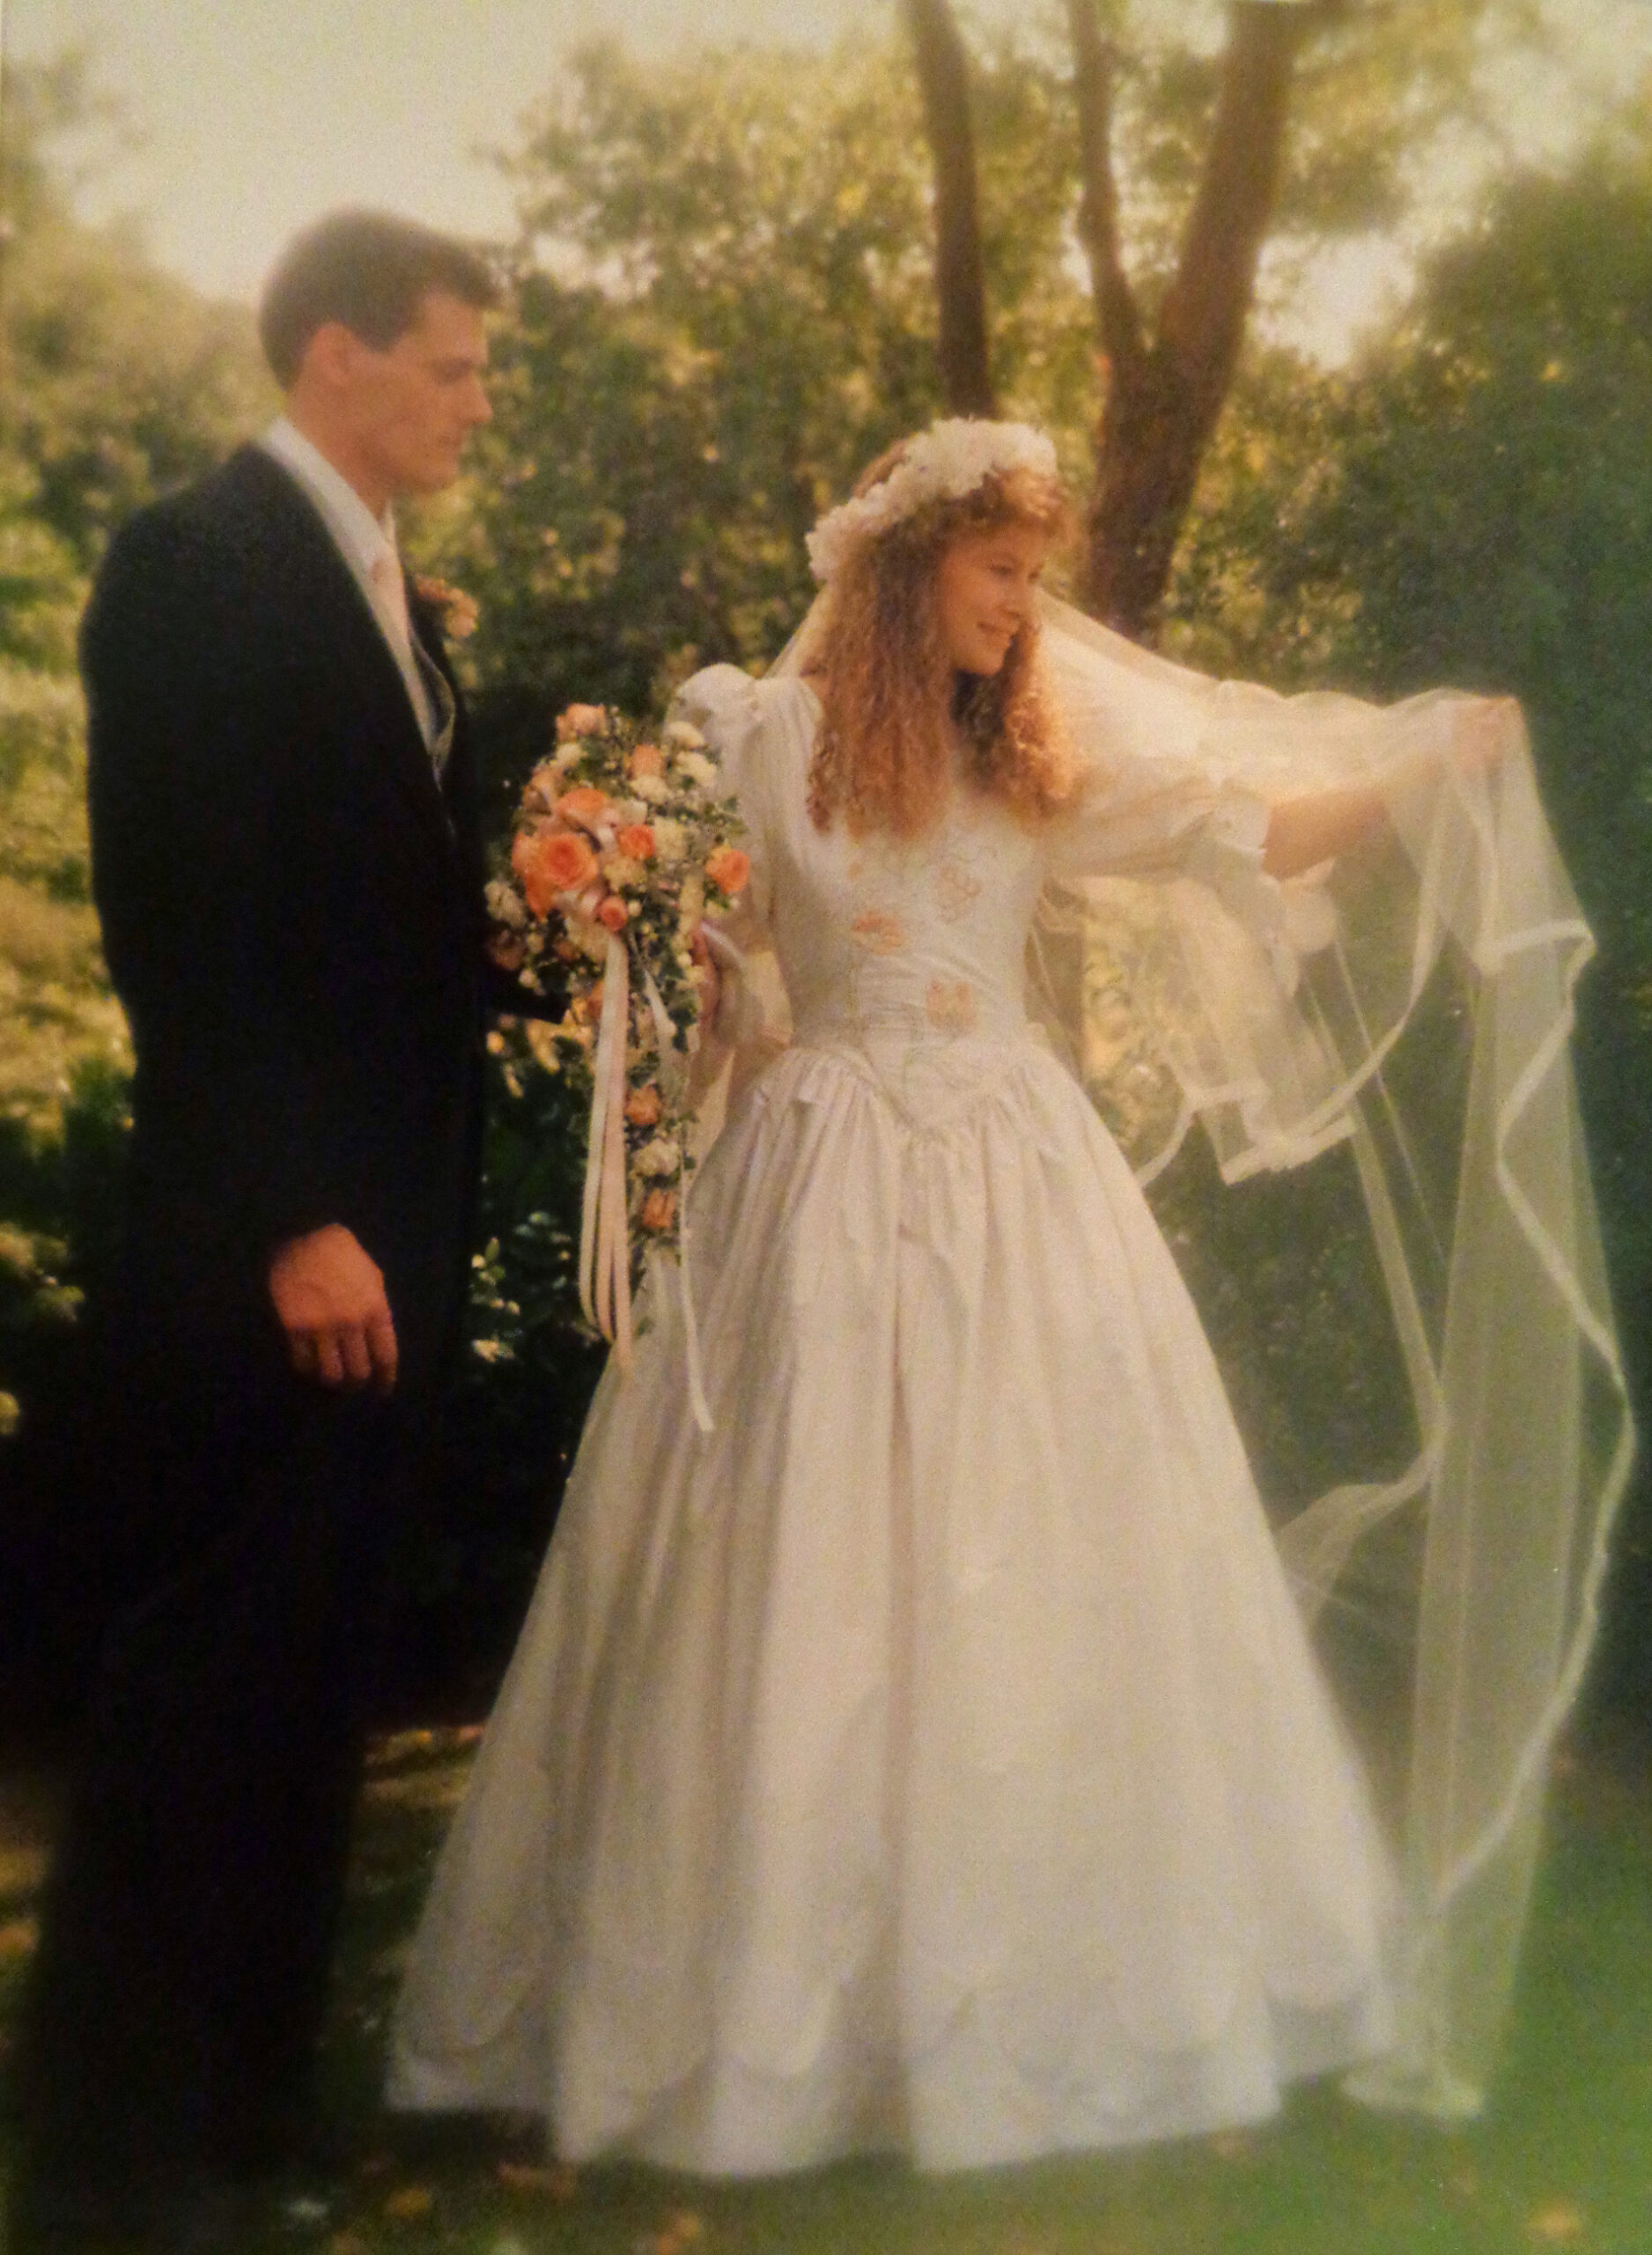 Our wedding, showing off the hand embroidered bodice of my wedding dress